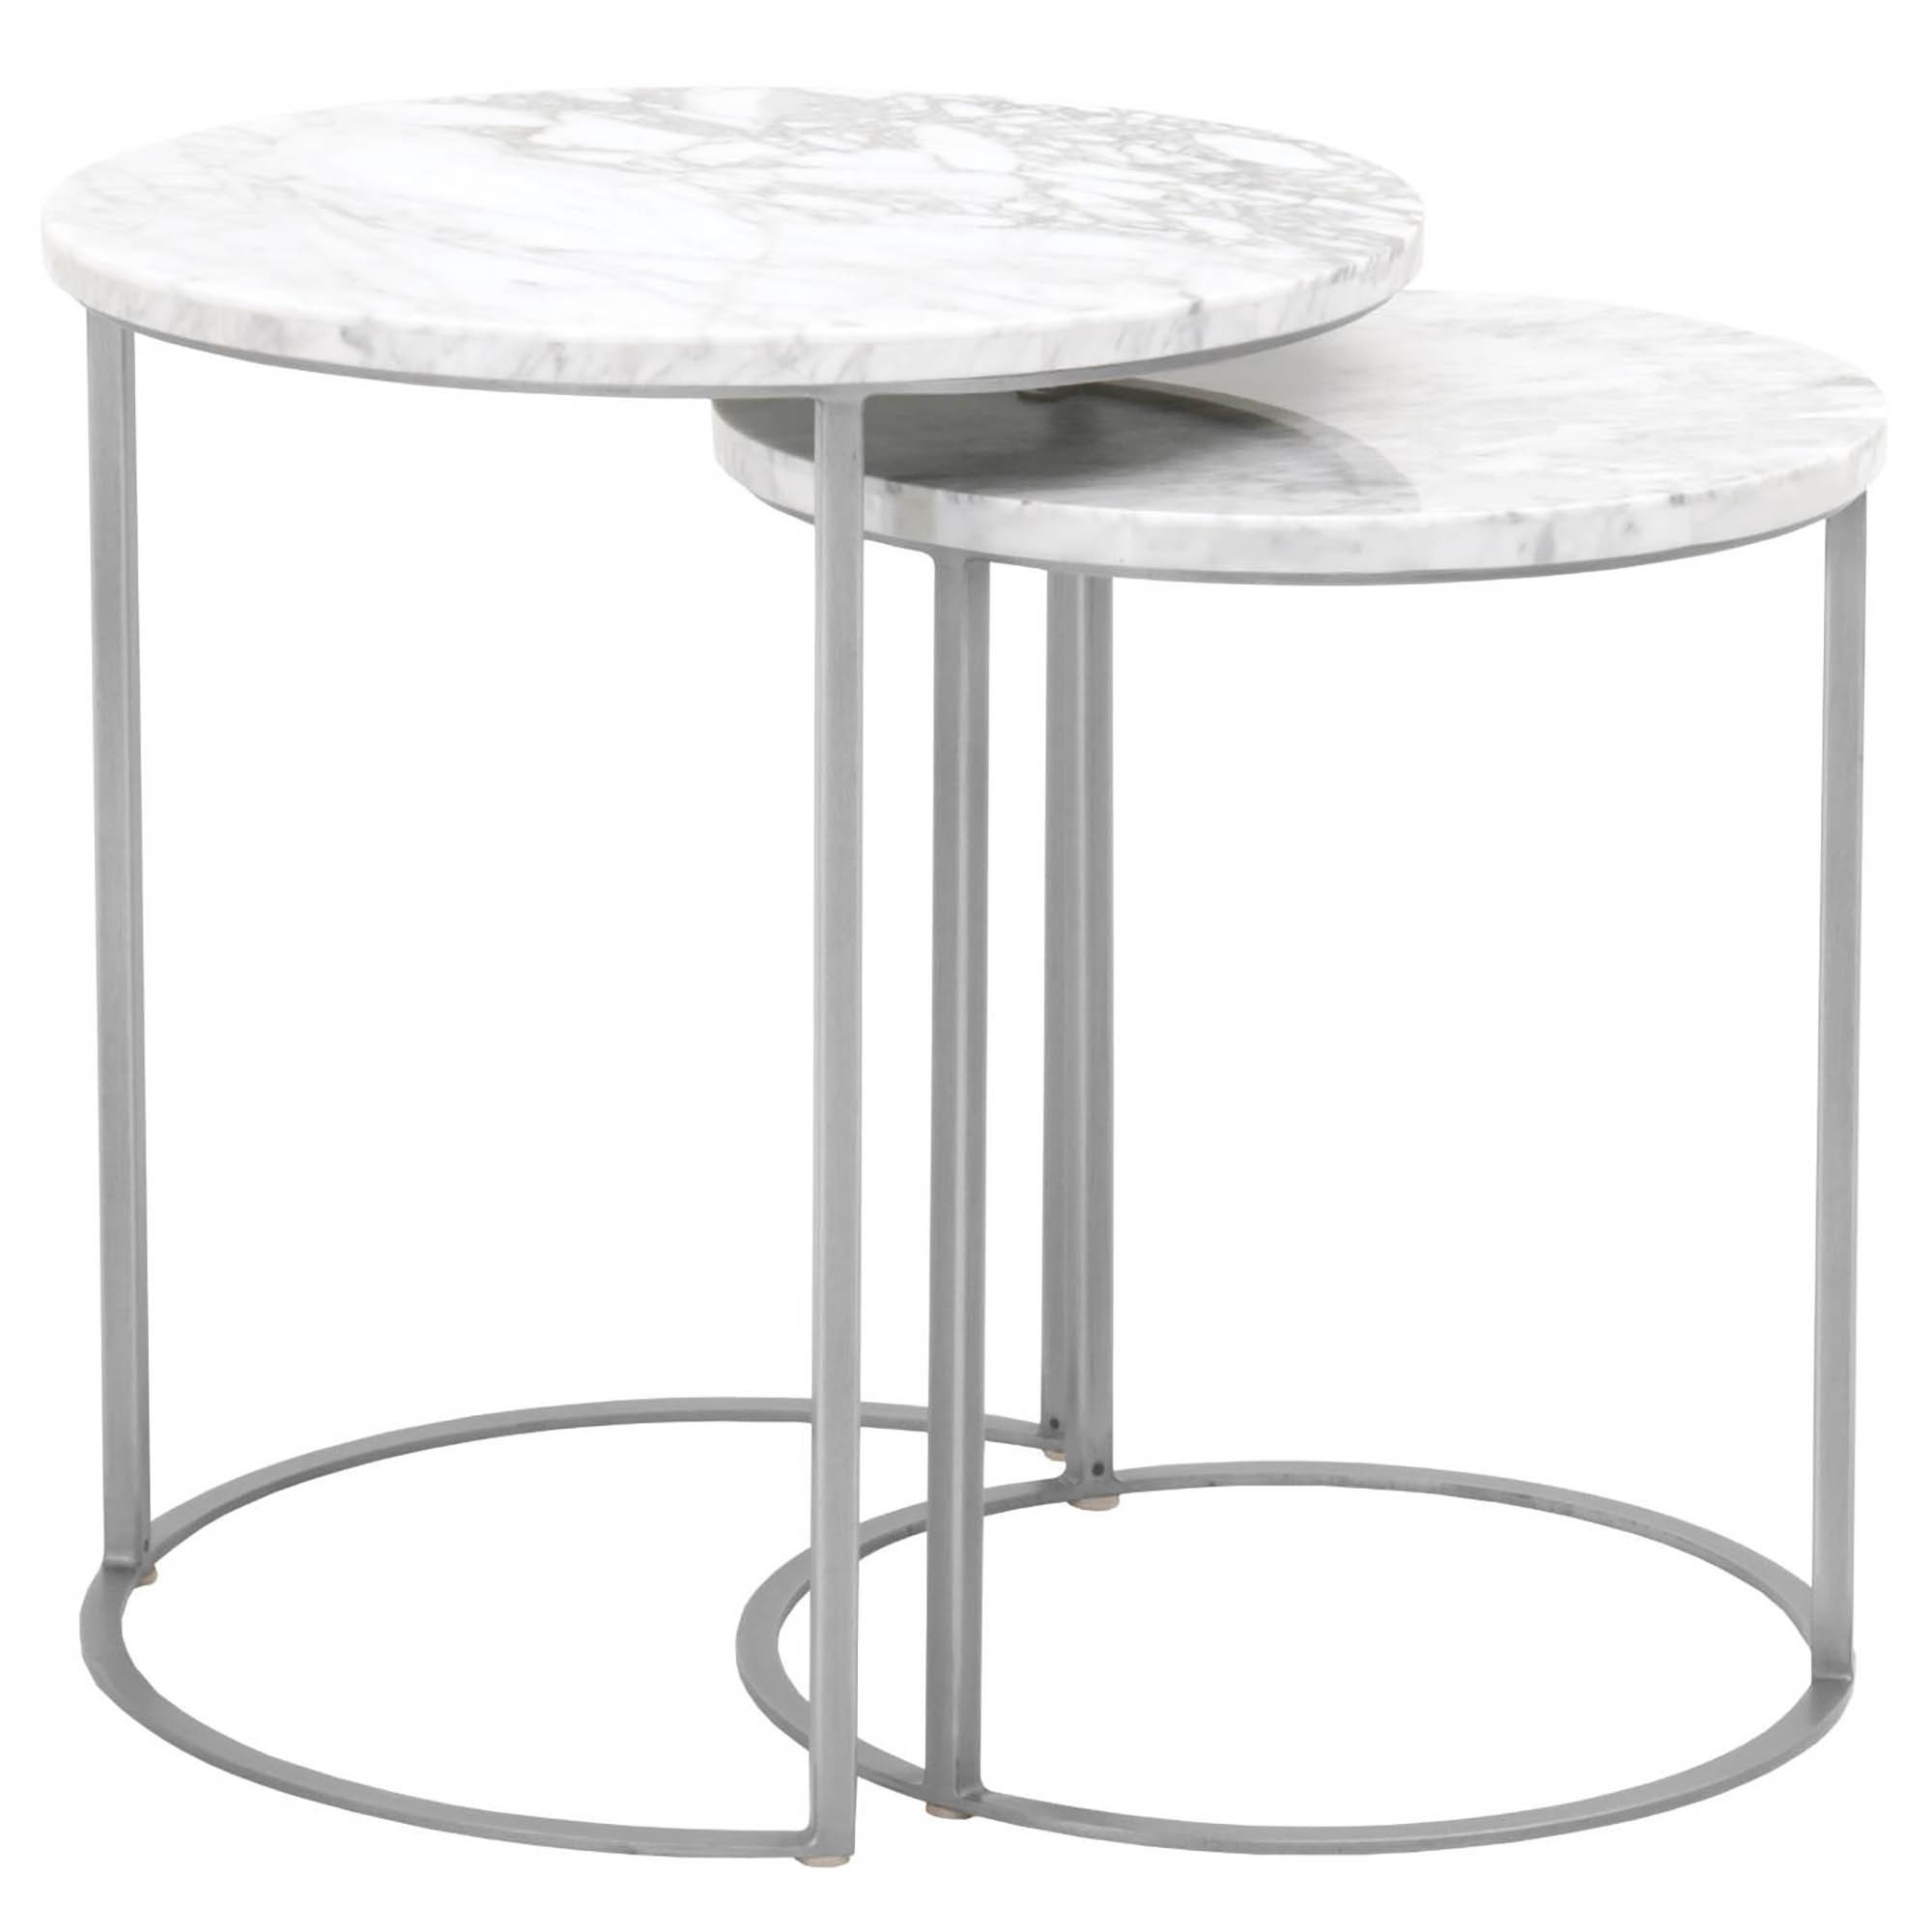 candelabra home carrera round nesting accent table stainless steel brushed black metal industrial narrow wine rack waterproof outdoor chair covers decoration things half circle